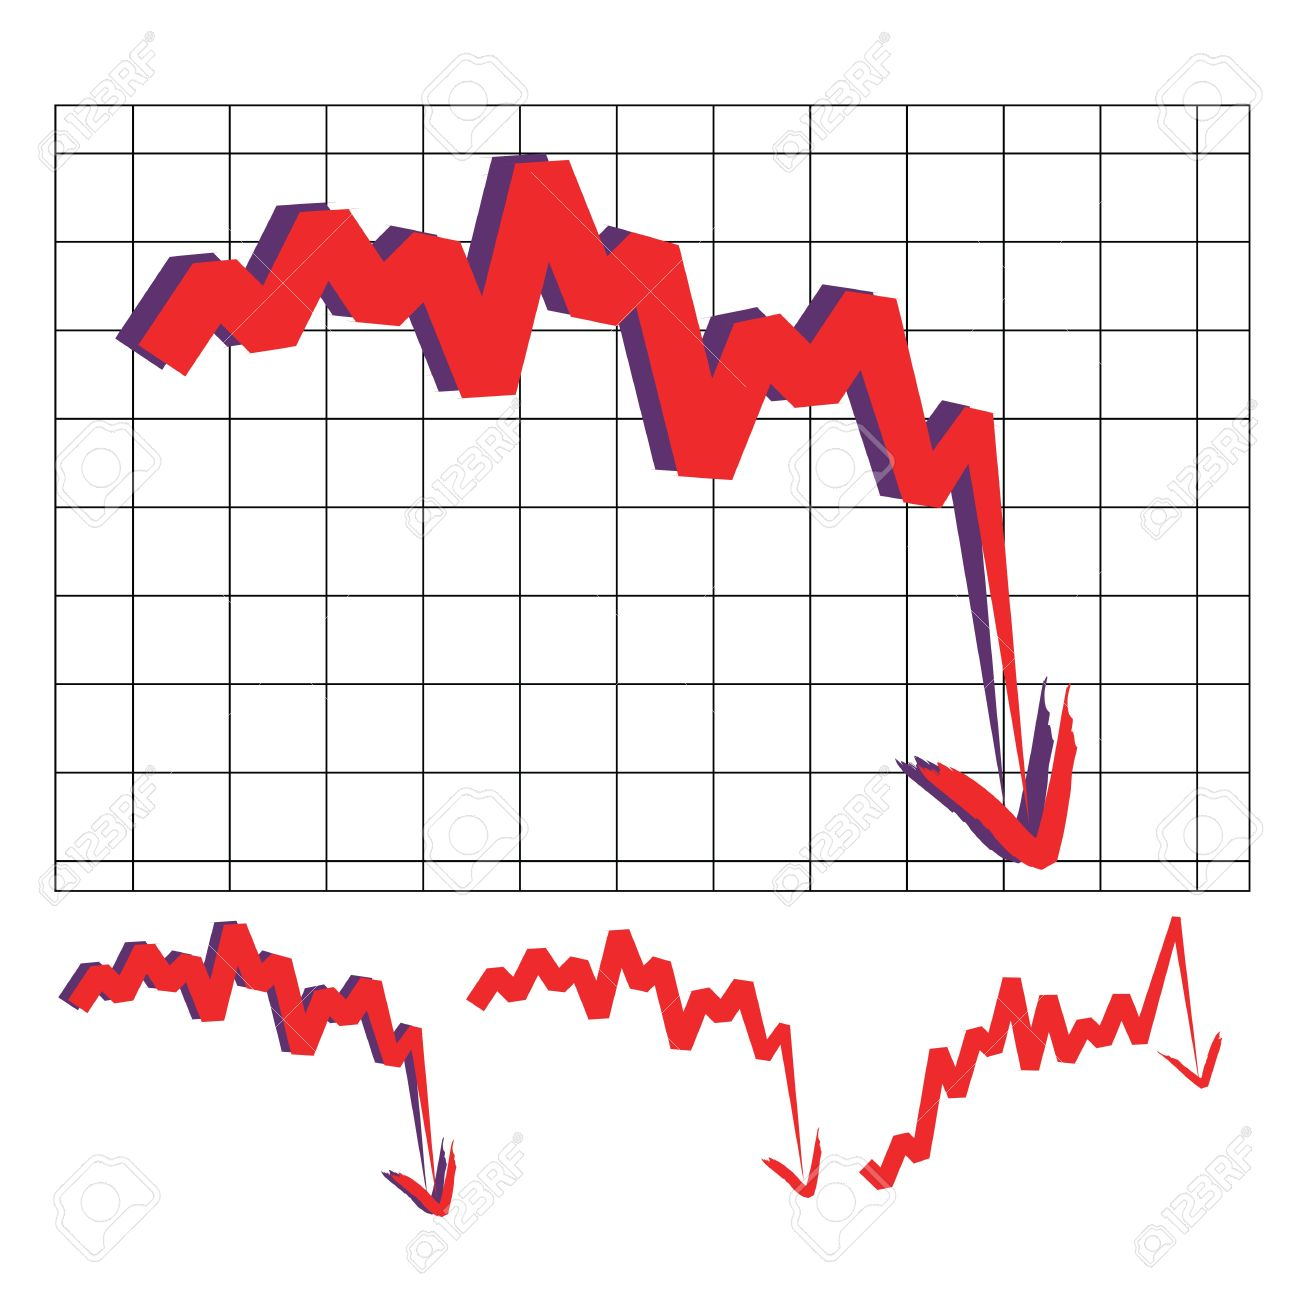 Stocks Index Downward Arrow Vector, Indicate Decline And Sharp.